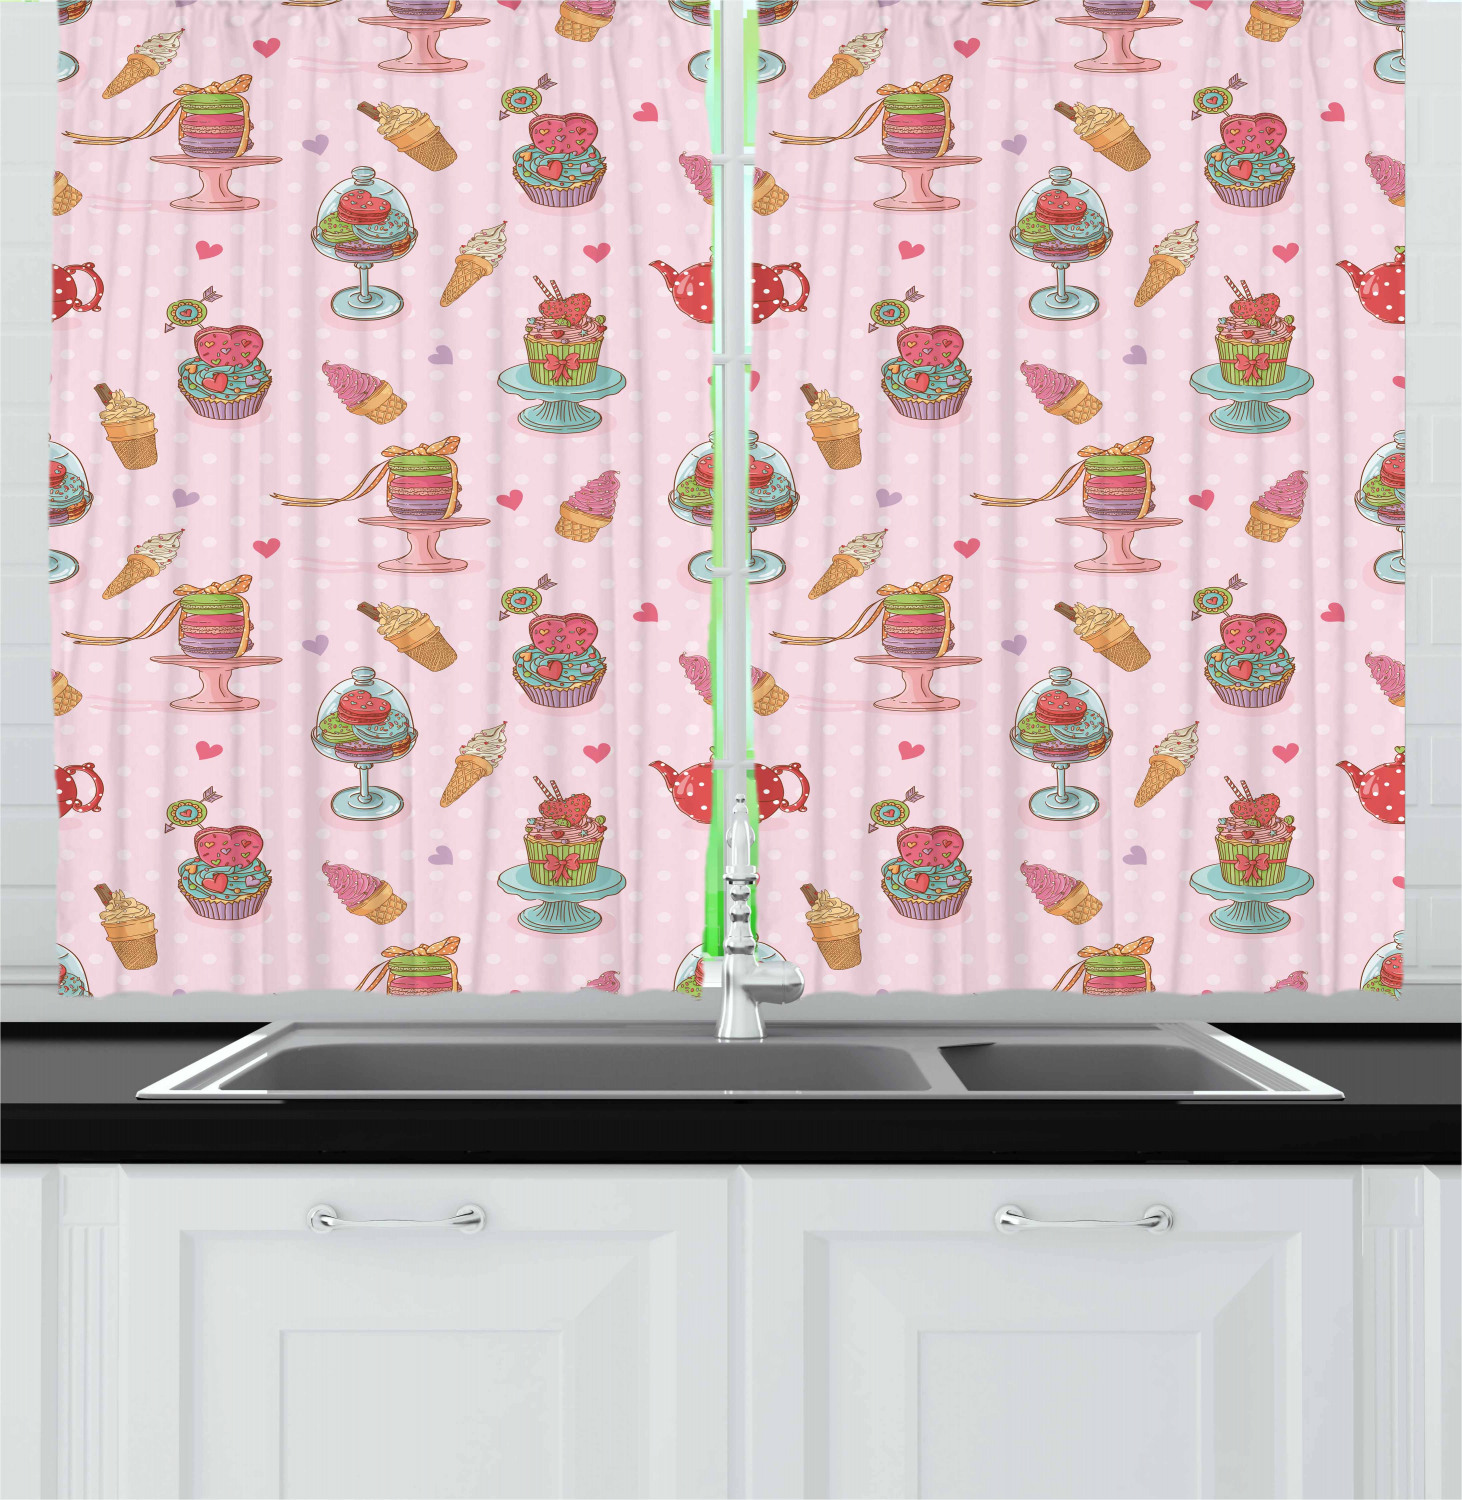 Ice Cream Curtains 2 Panels Set Retro Style Cupcakes Teapots Candies Cookies On Polka Dots Vintage Kitchen Print Window Drapes For Living Room Bedroom 55w X 39l Inches Multicolor By Ambesonne